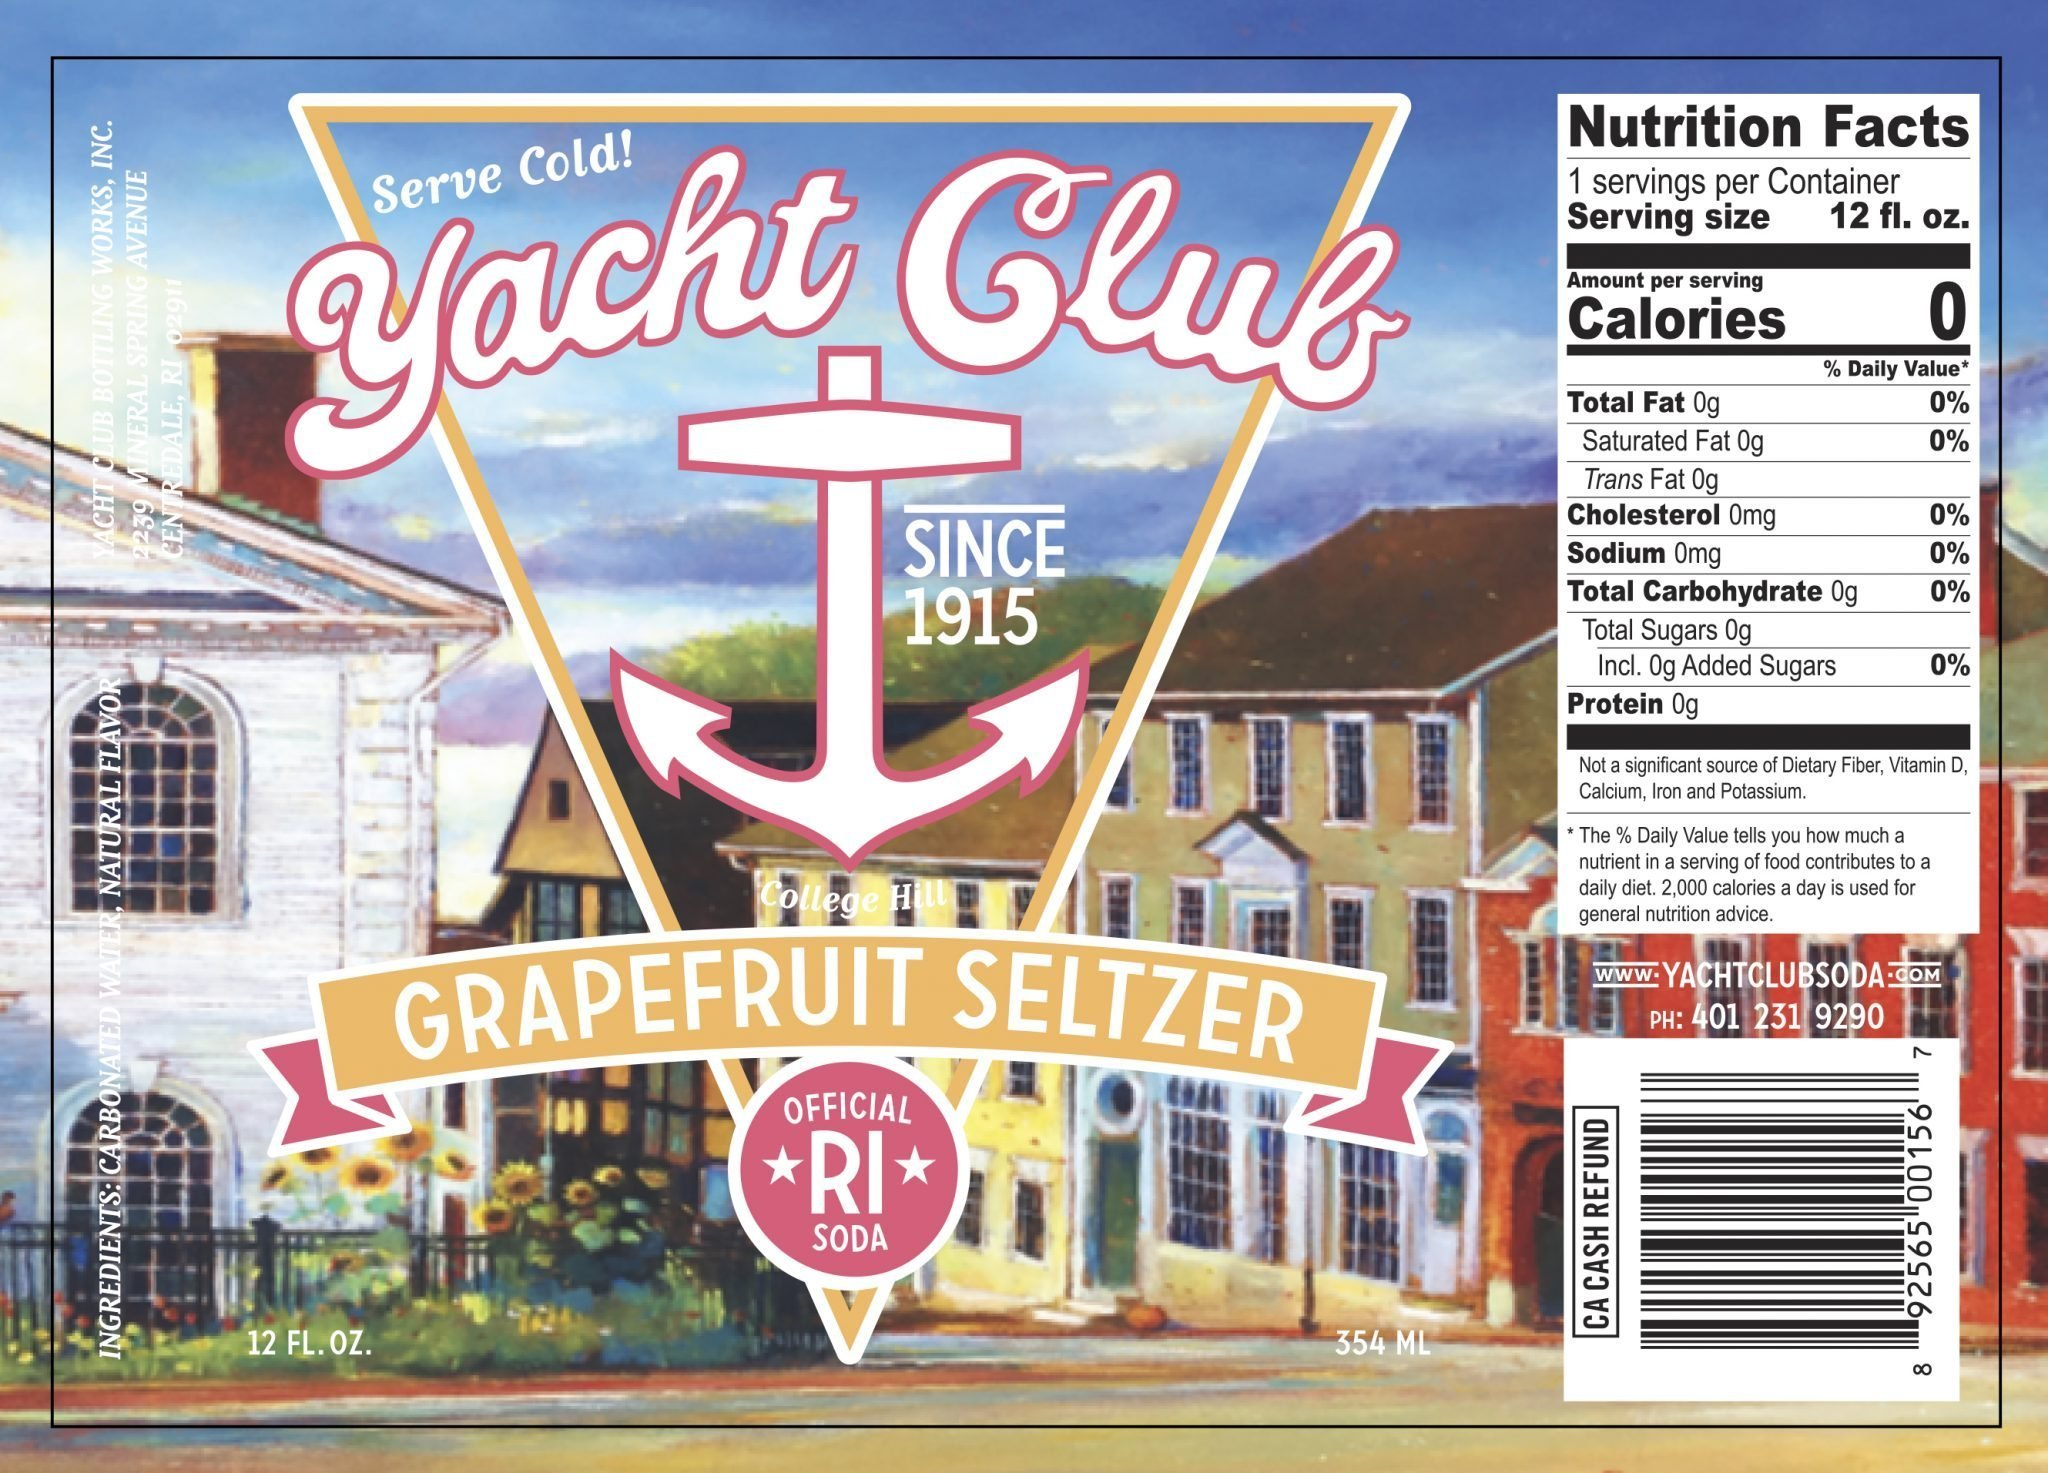 Yacht Club Grapefruit Seltzer label